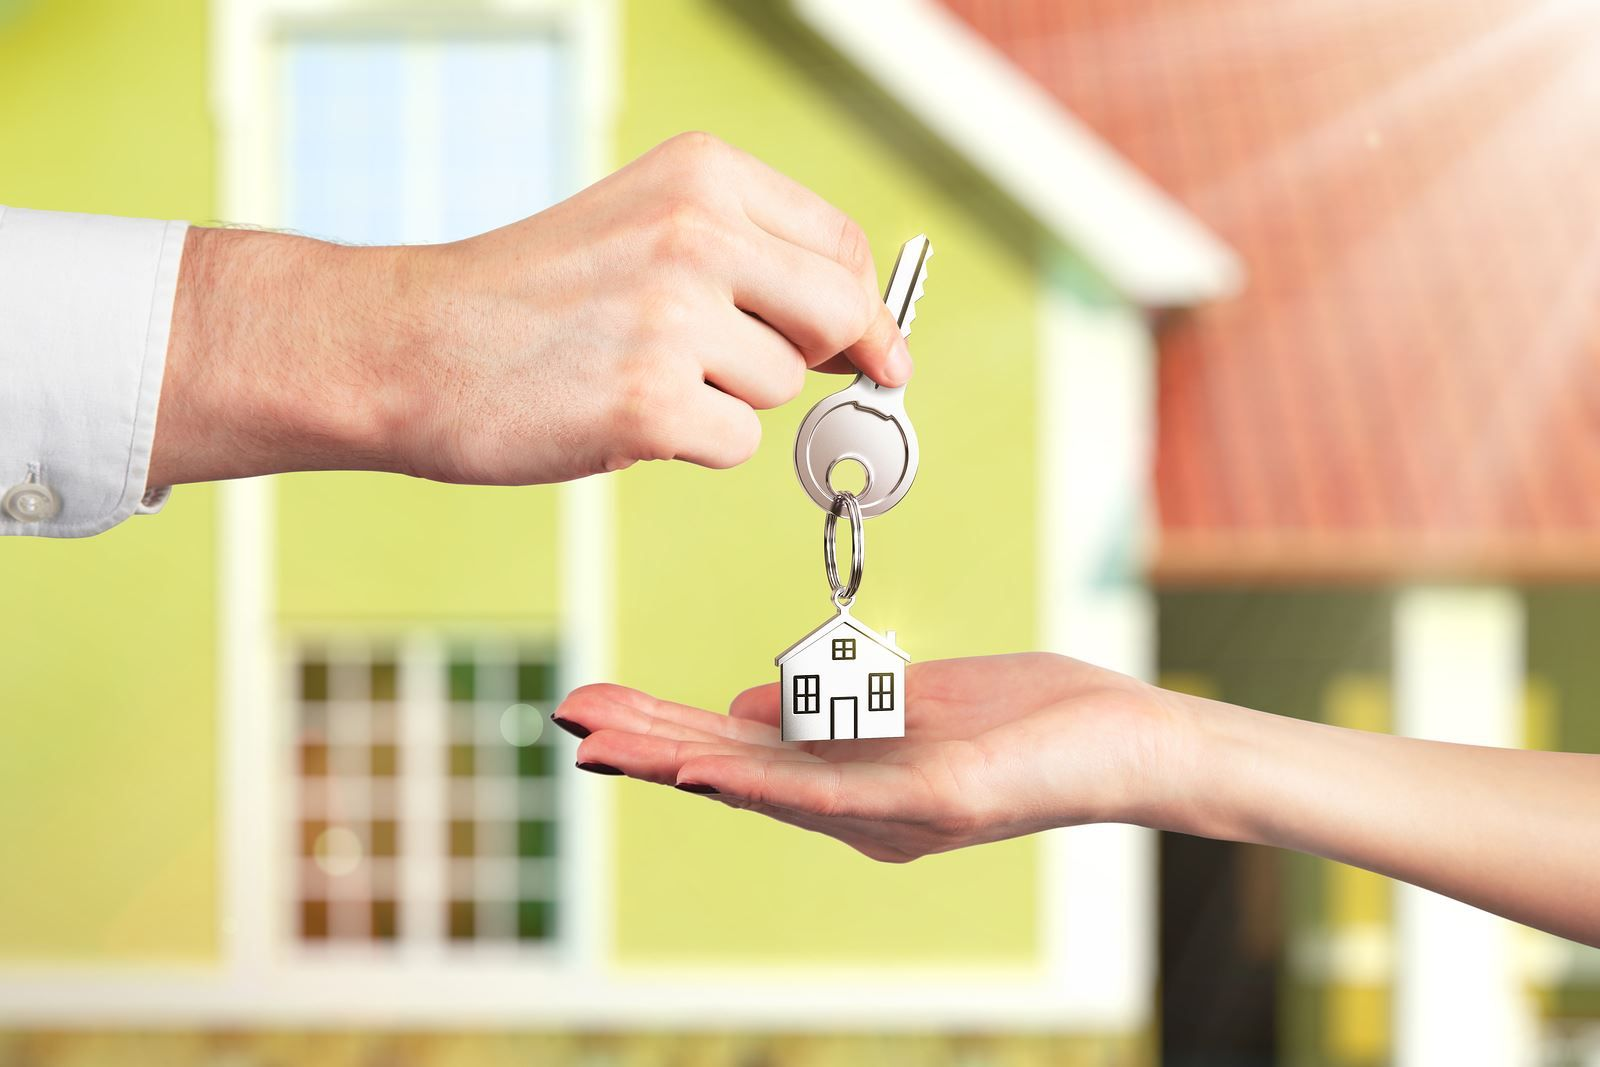 Pin By Mashvisor On Real Estate Investing Tips Things To Sell